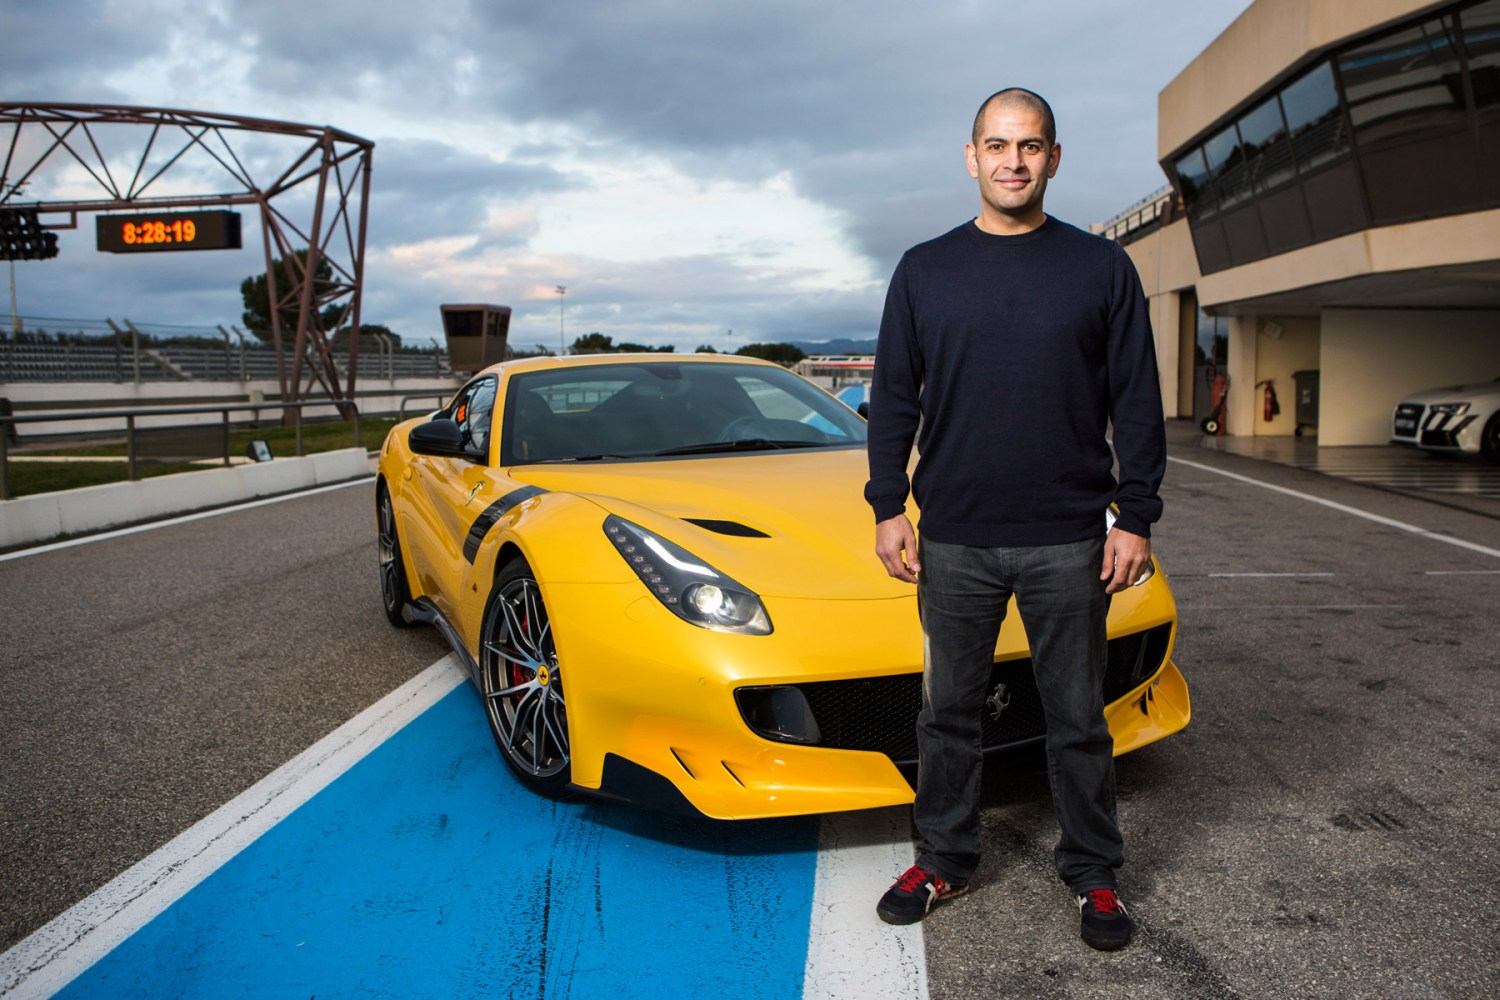 This is how Top Gear's Chris Harris was banned from driving Ferraris